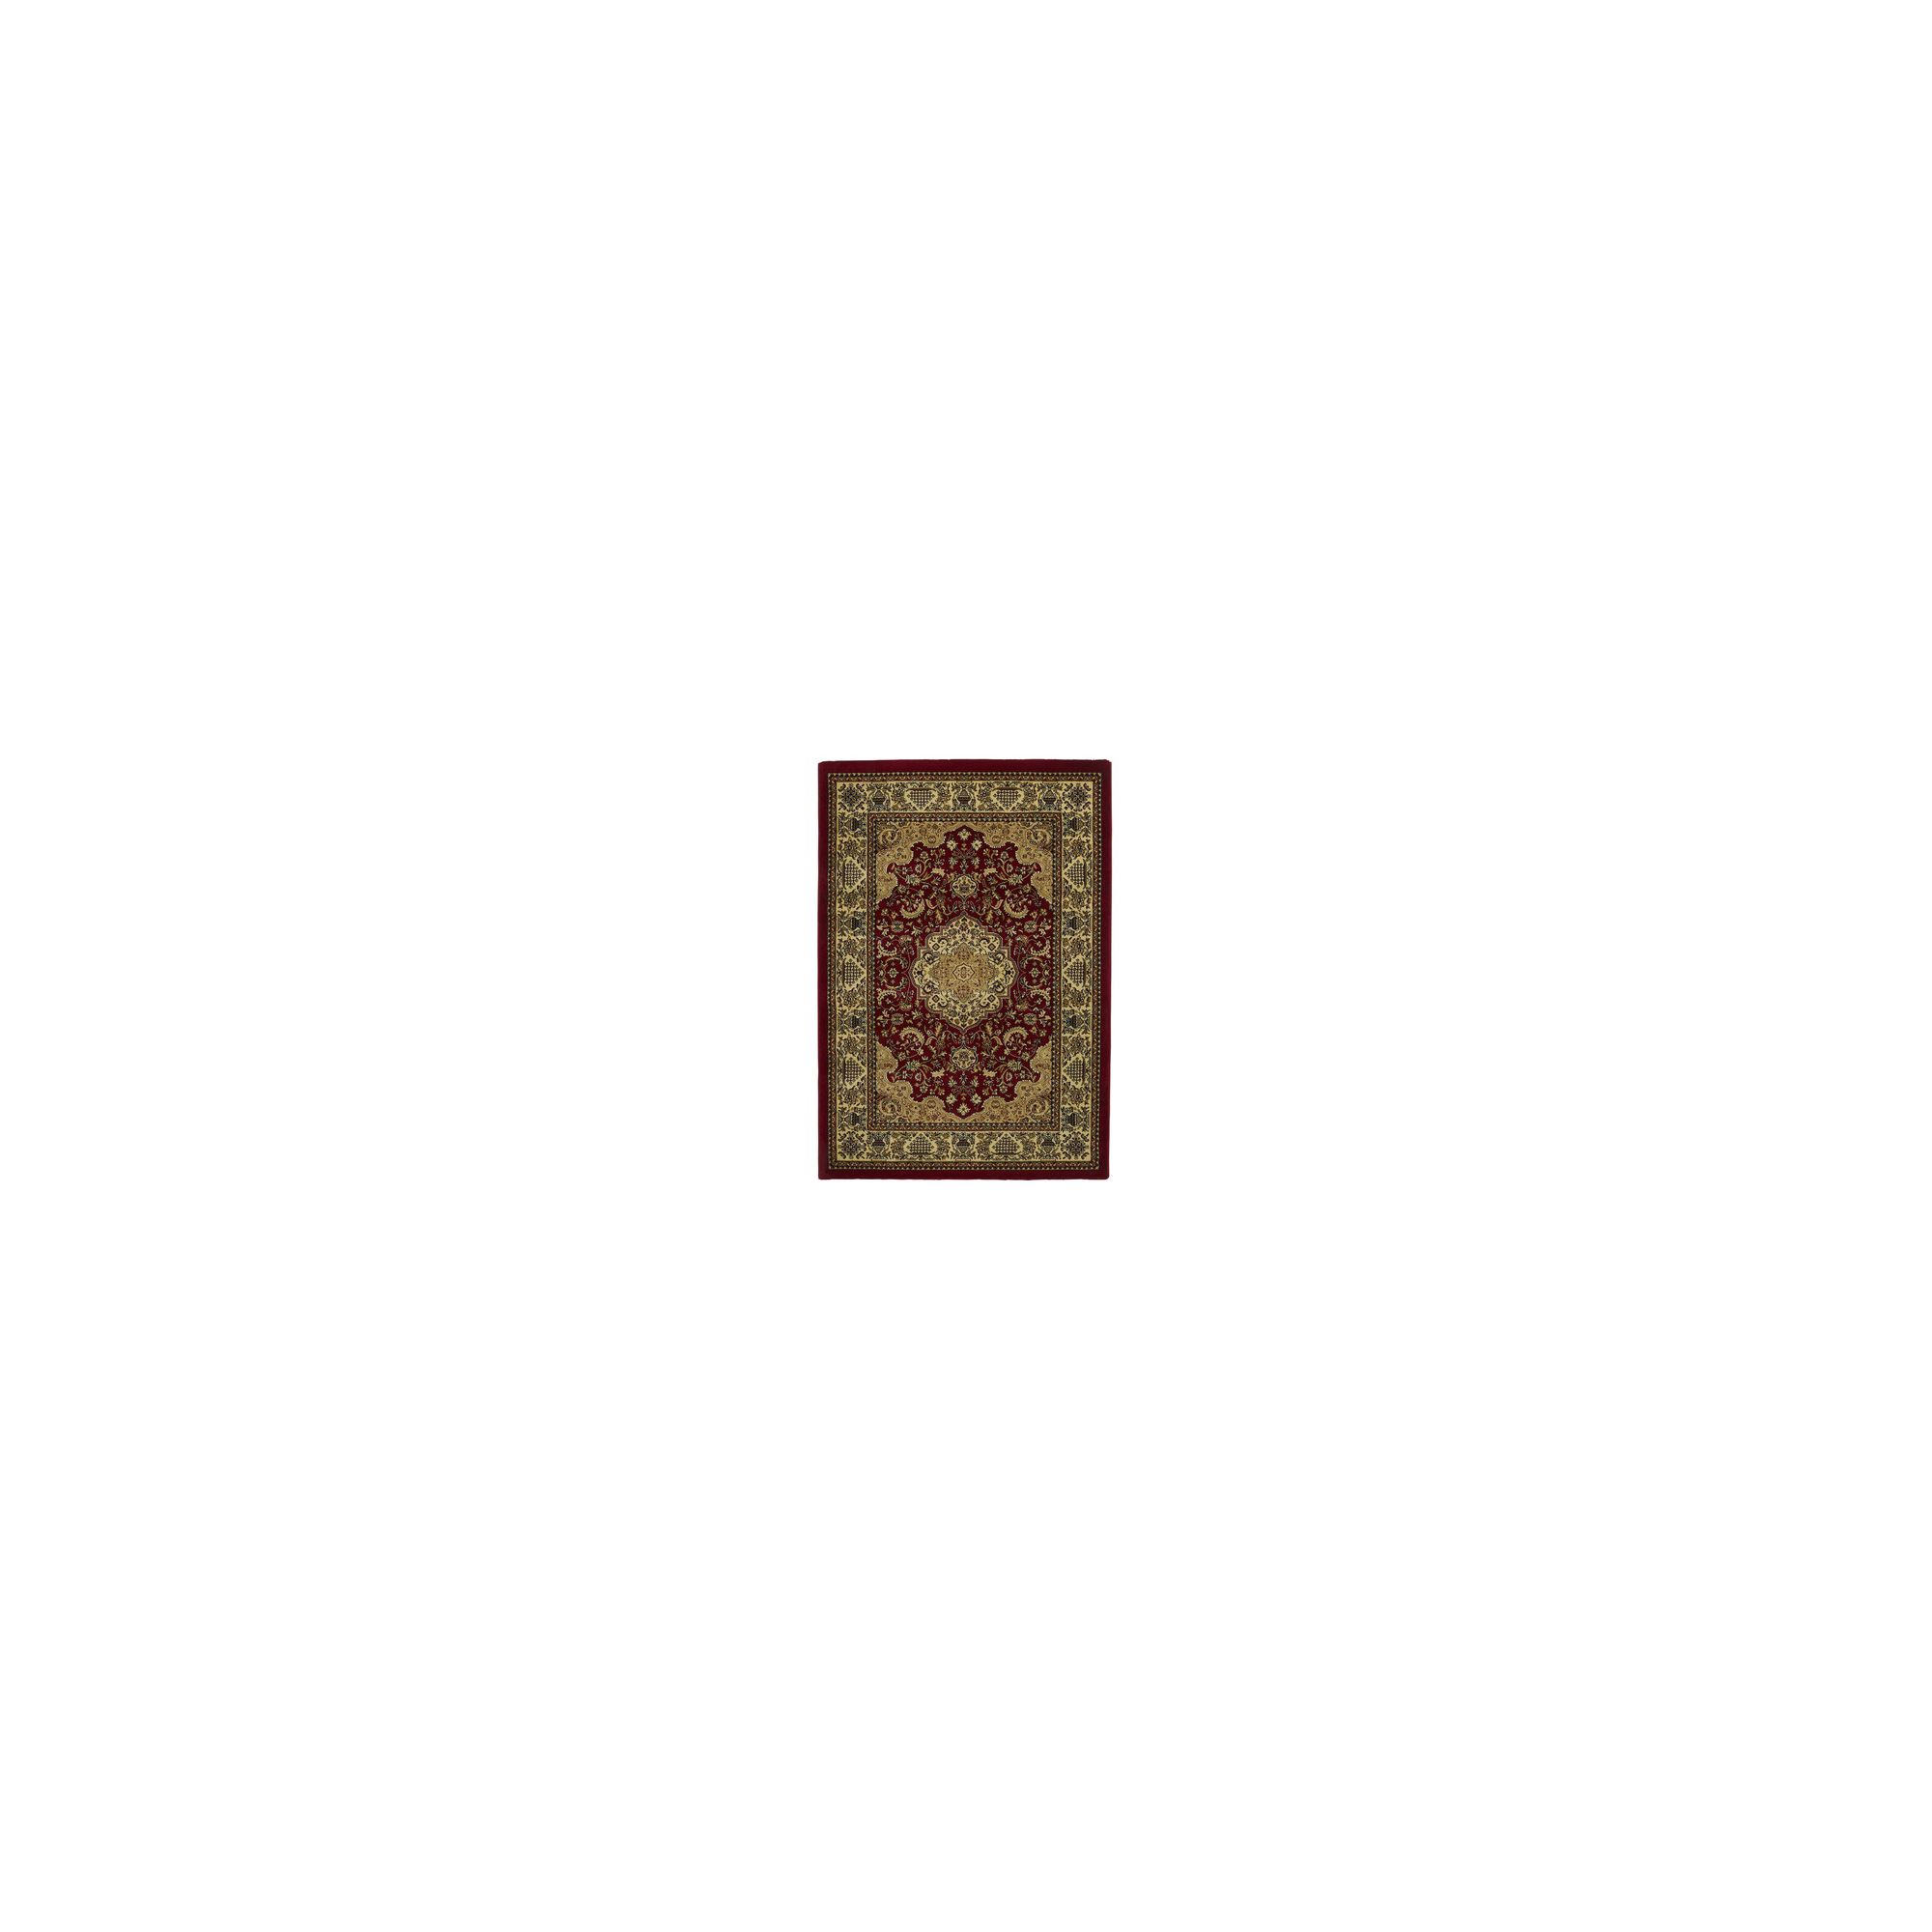 Oriental Carpets & Rugs Heritage 02A Red Rug - 280cm x 380cm at Tesco Direct